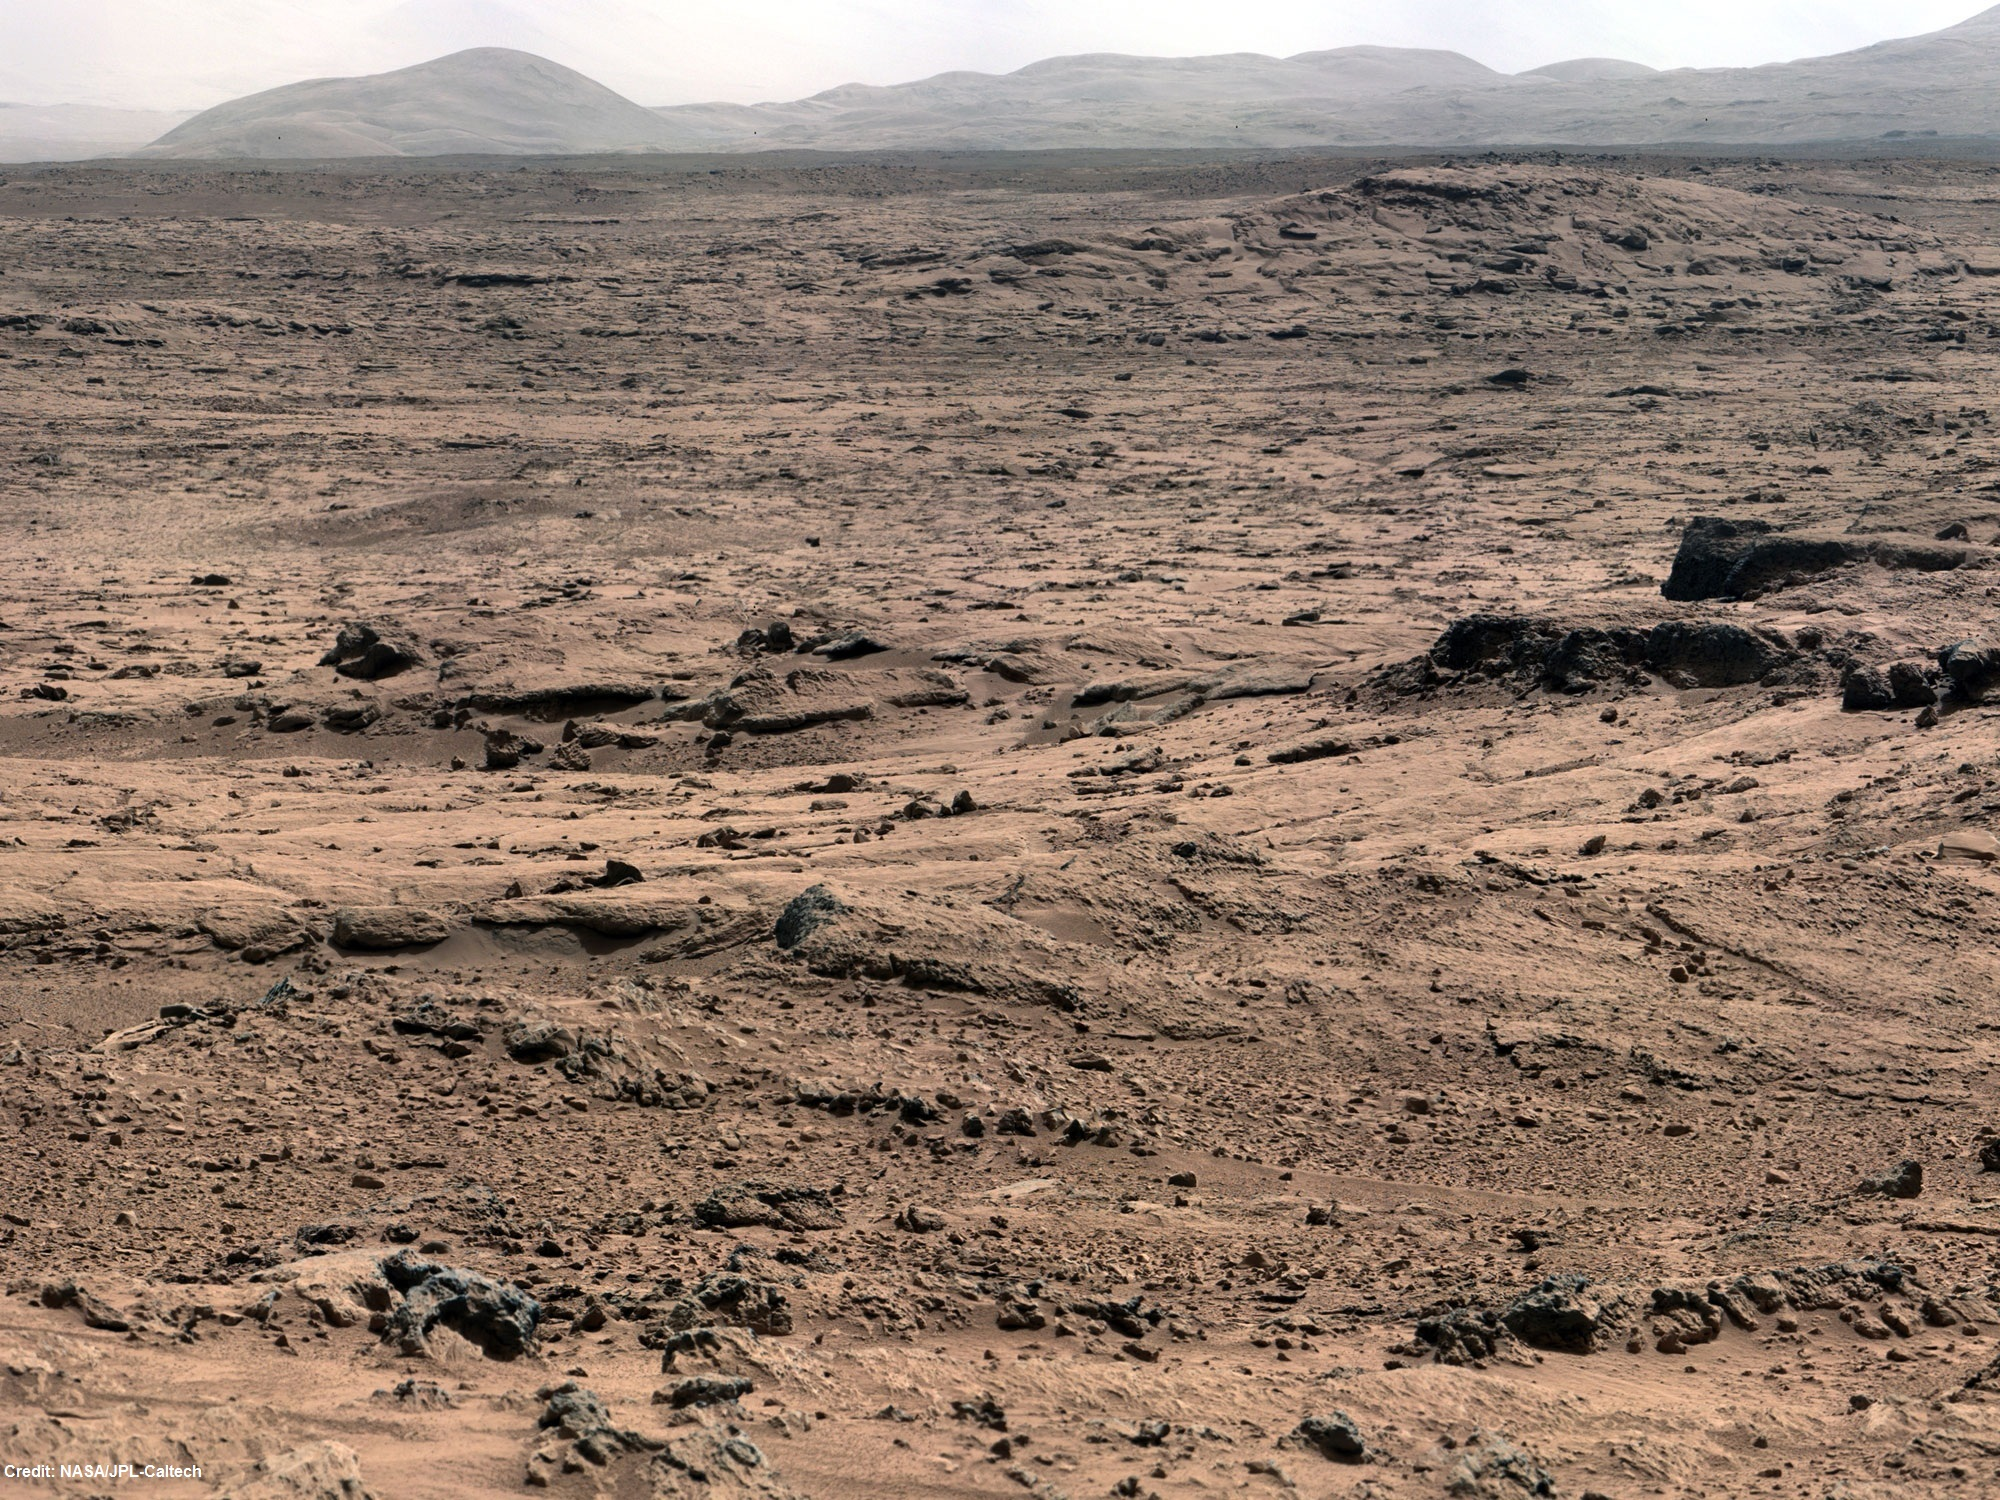 NASA's Mars Curiosity rover explores 'Yellowknife Bay ...